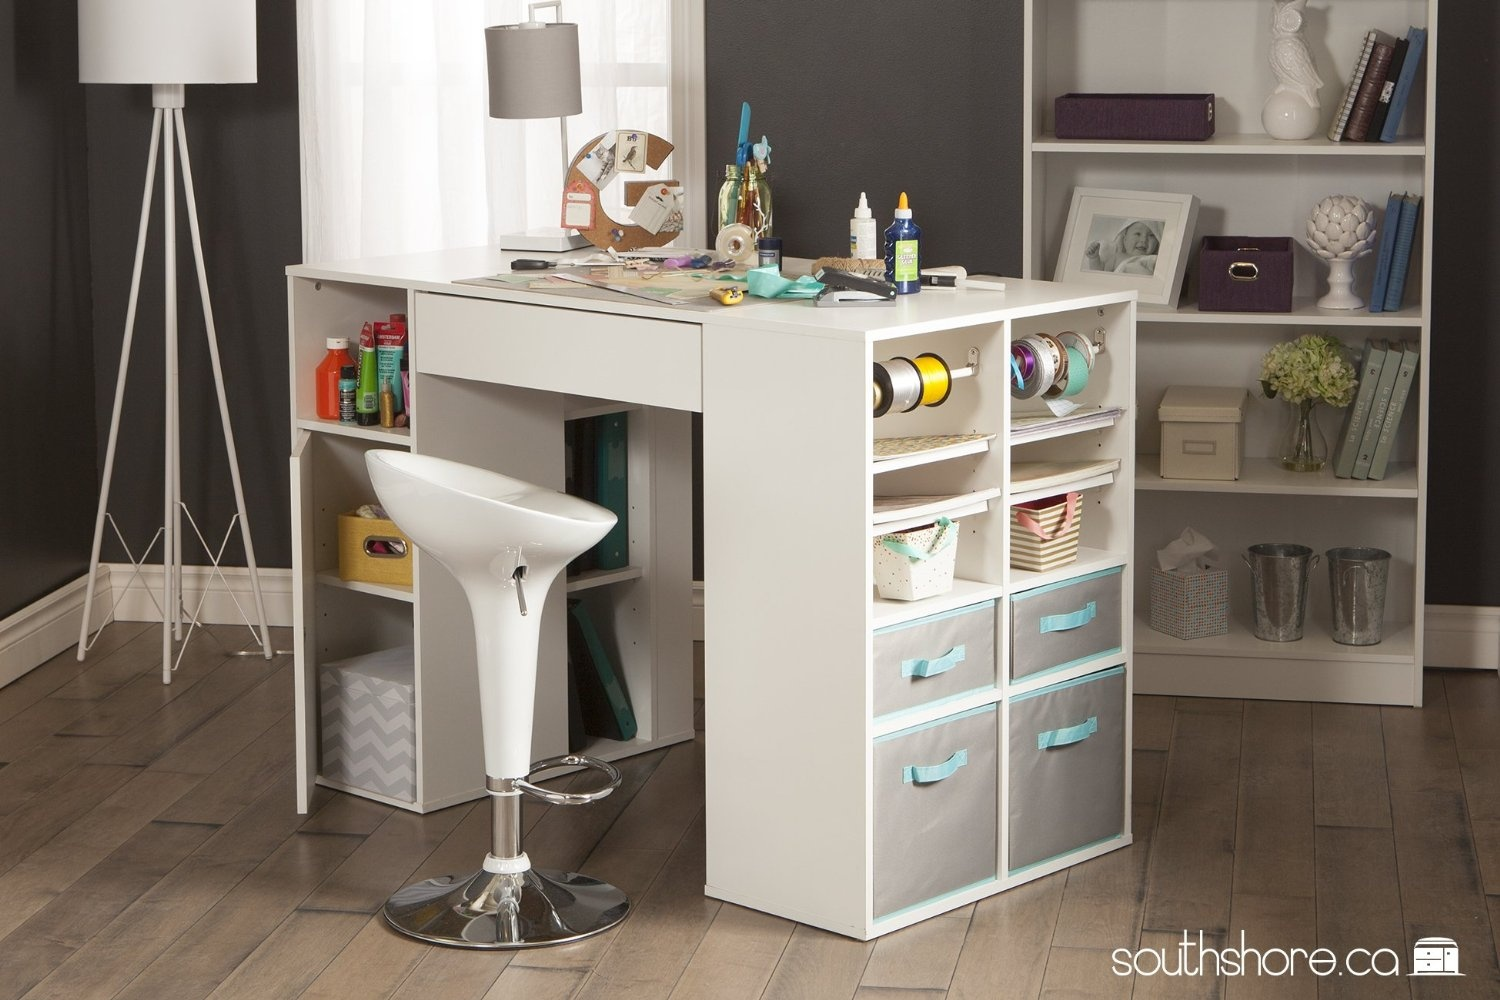 South Shore South Shore Crea Counter Height Craft Table With Storage Pure White By South Shore Shop Online For Arts Crafts In Australia